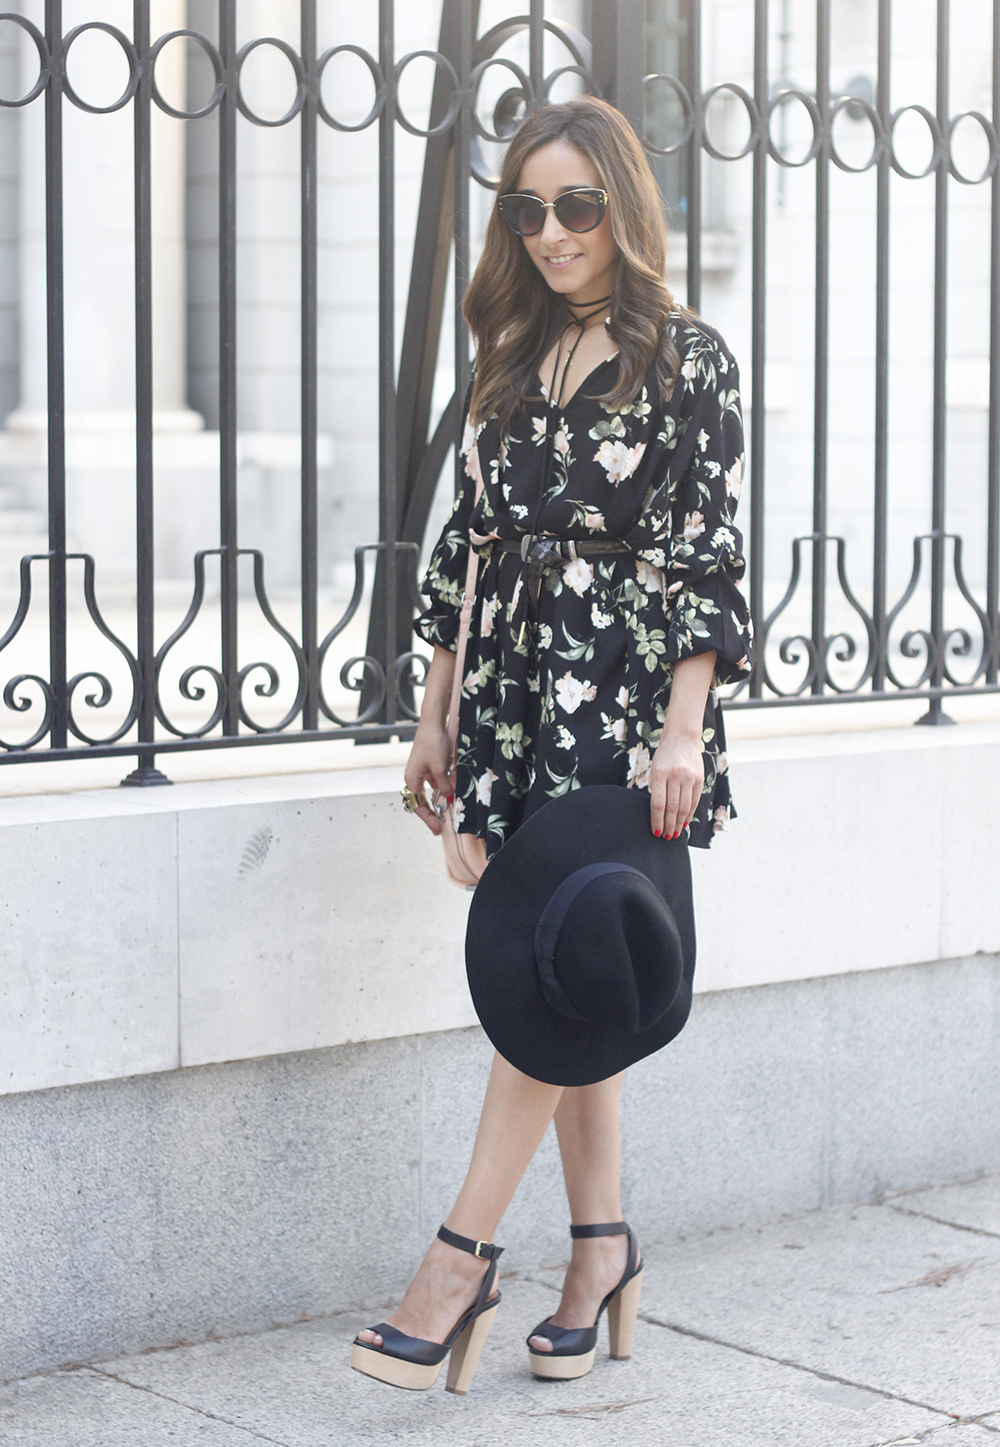 boho black dress with floral print hat coach bag wedges summer outfit03